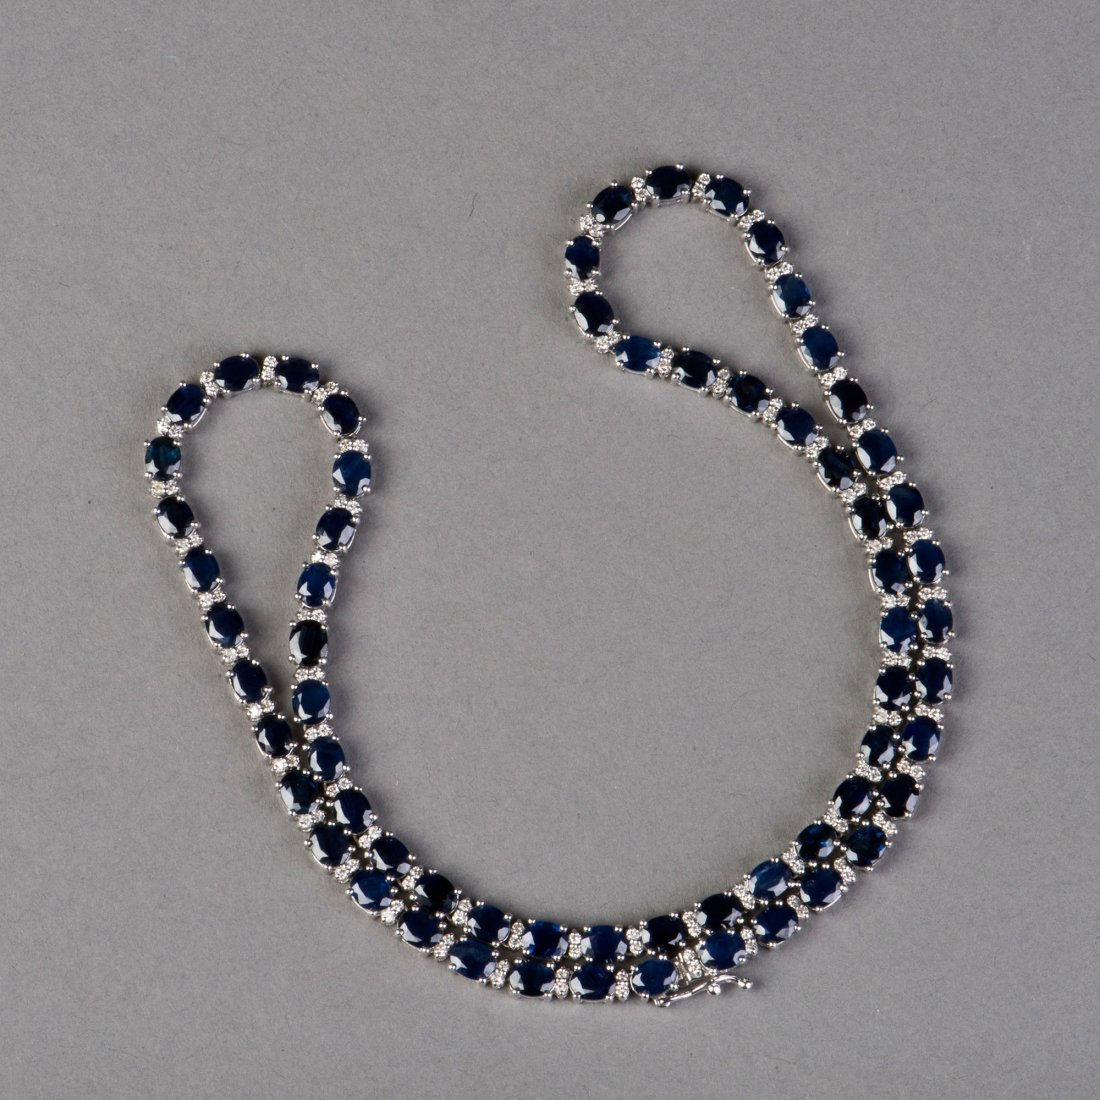 AN OVAL-CUT SAPPHIRE NECKLACE